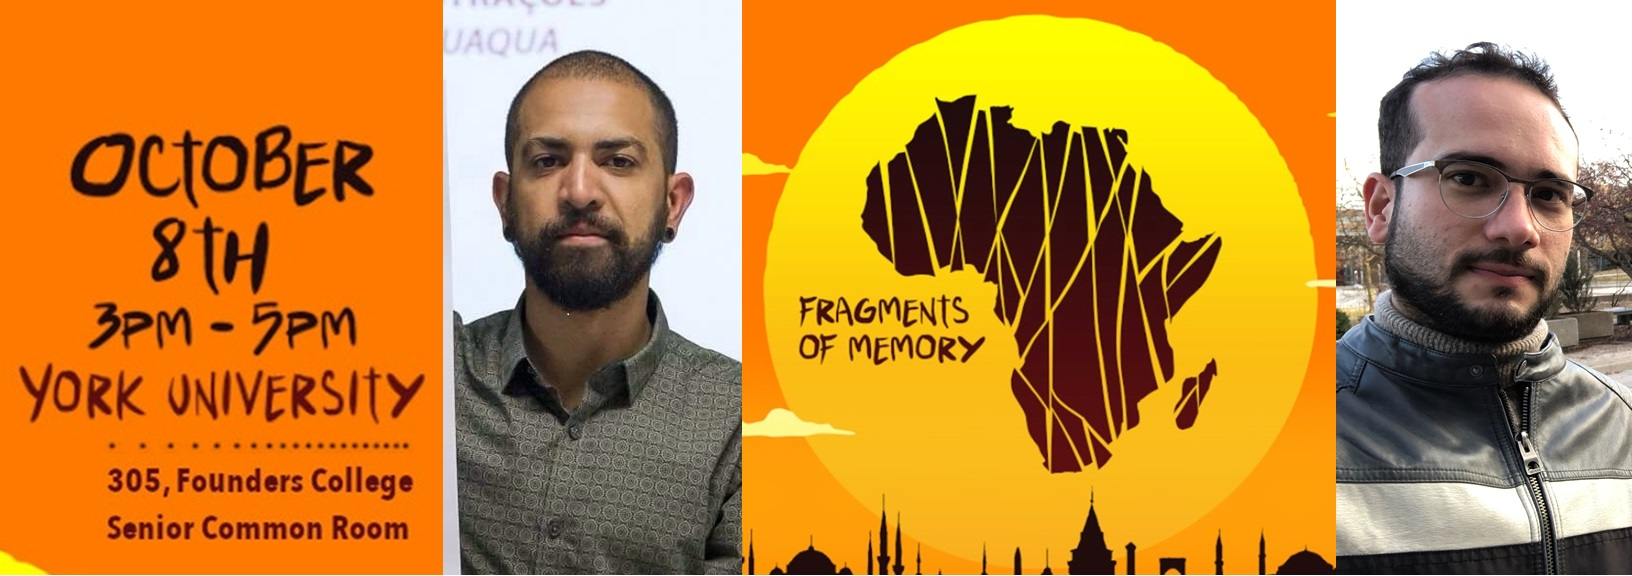 Fragments of Memory Exhibition